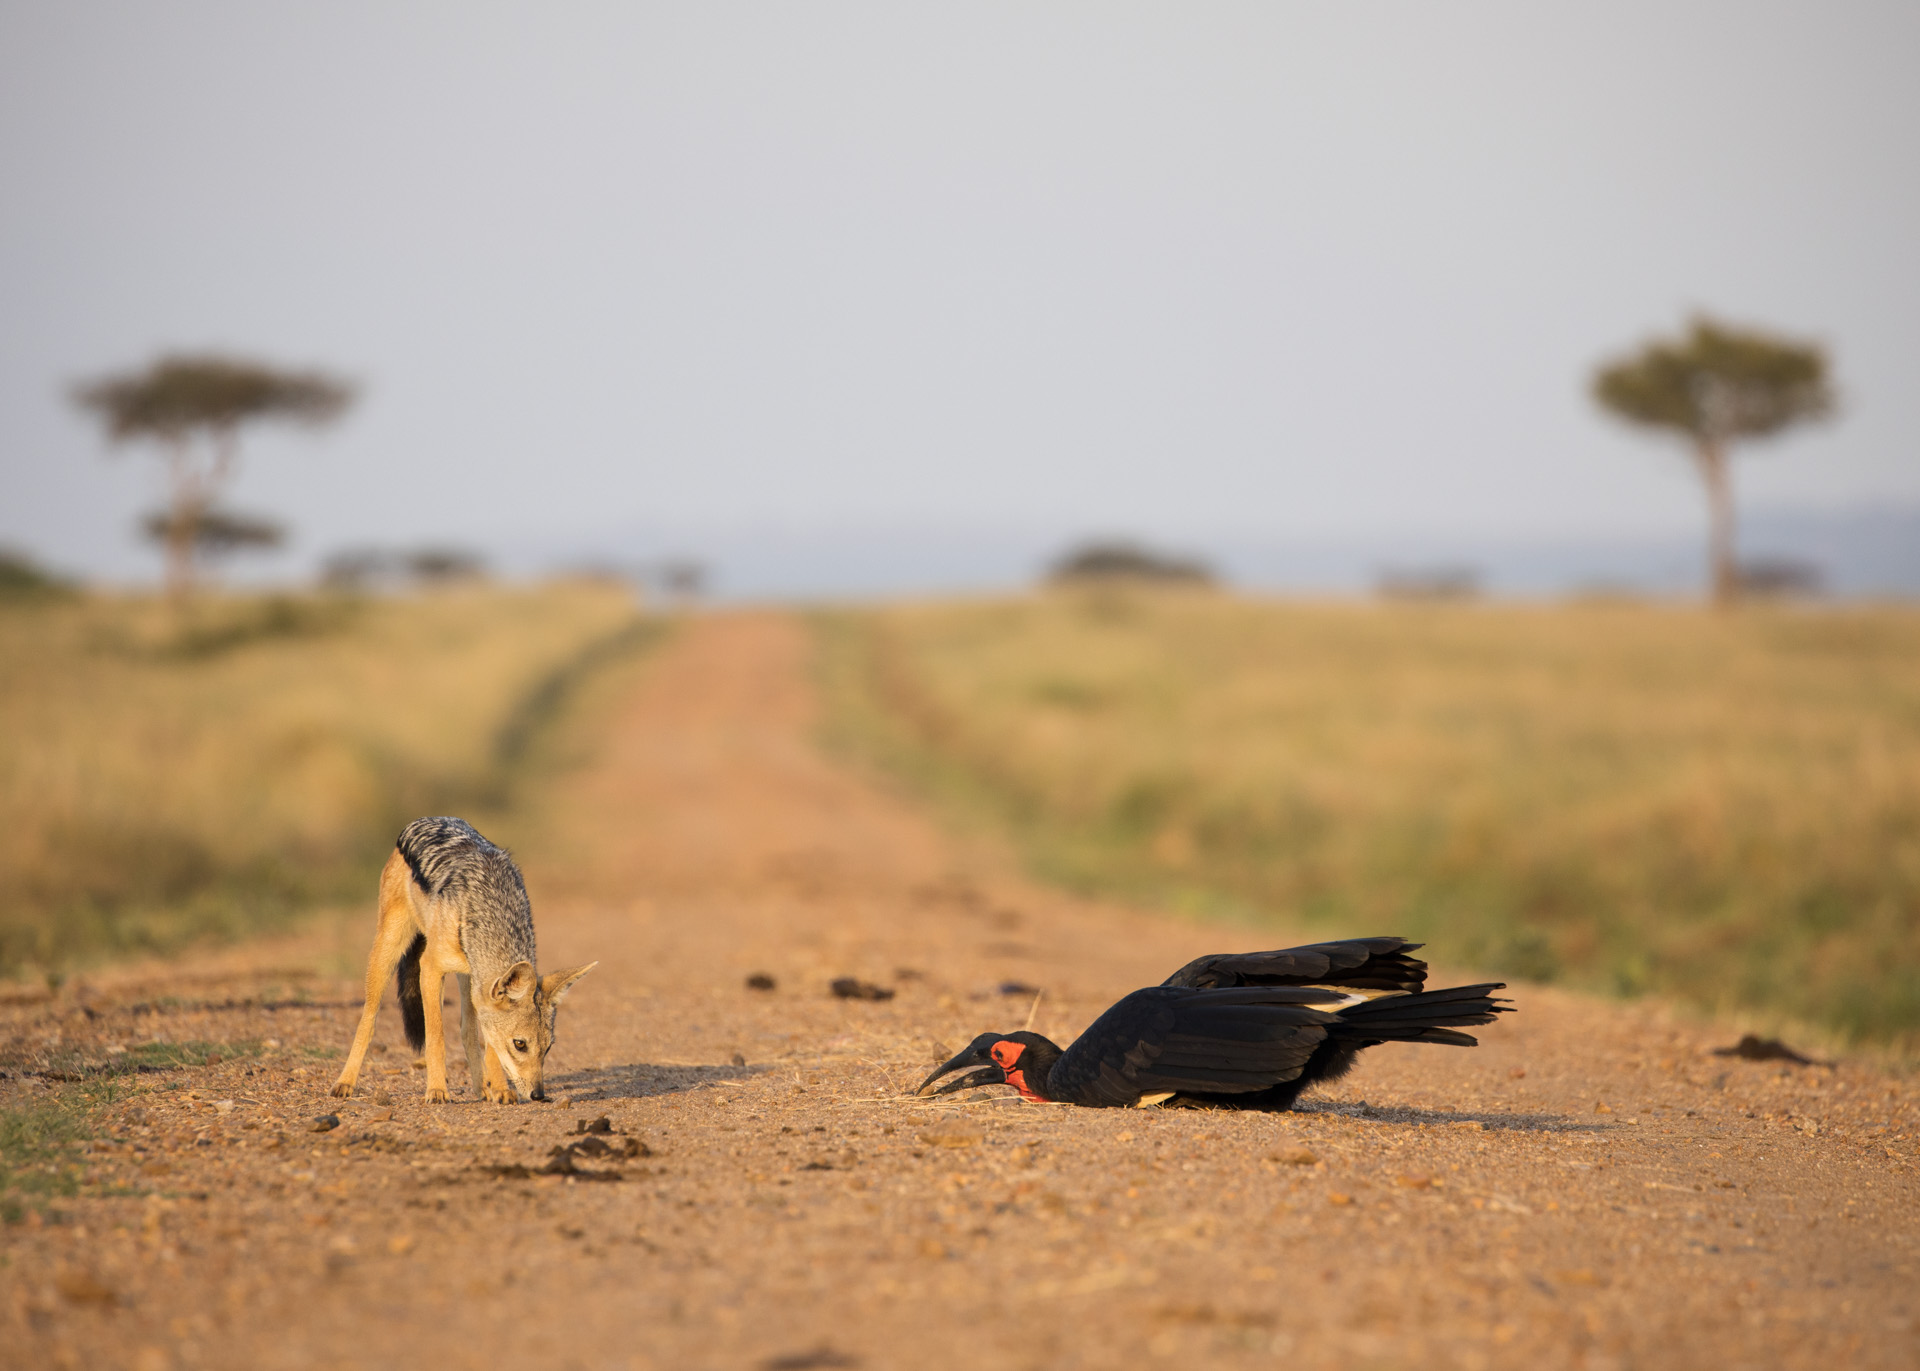 Jackal and hornbil 1